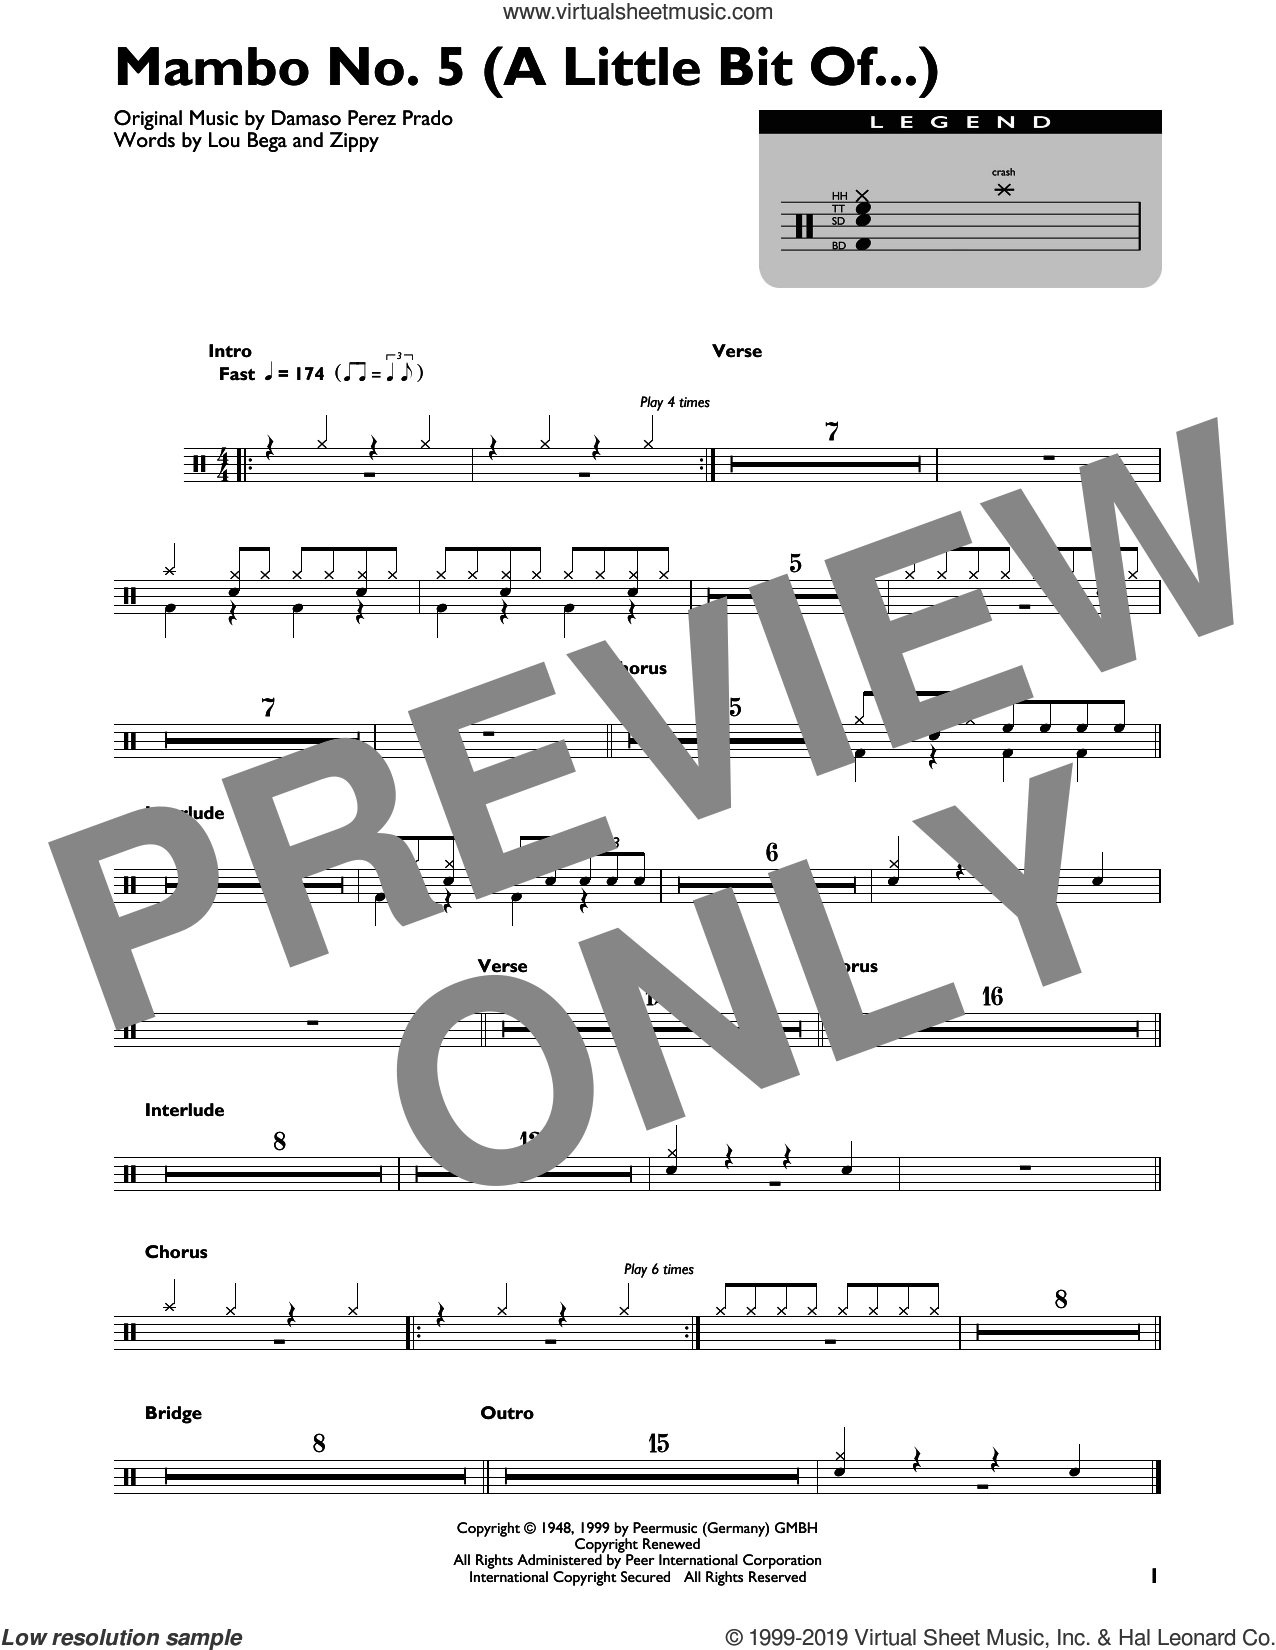 Mambo No. 5 (A Little Bit Of...) sheet music for drums (percussions) by Lou Bega, Damaso Perez Prado and Zippy, intermediate skill level